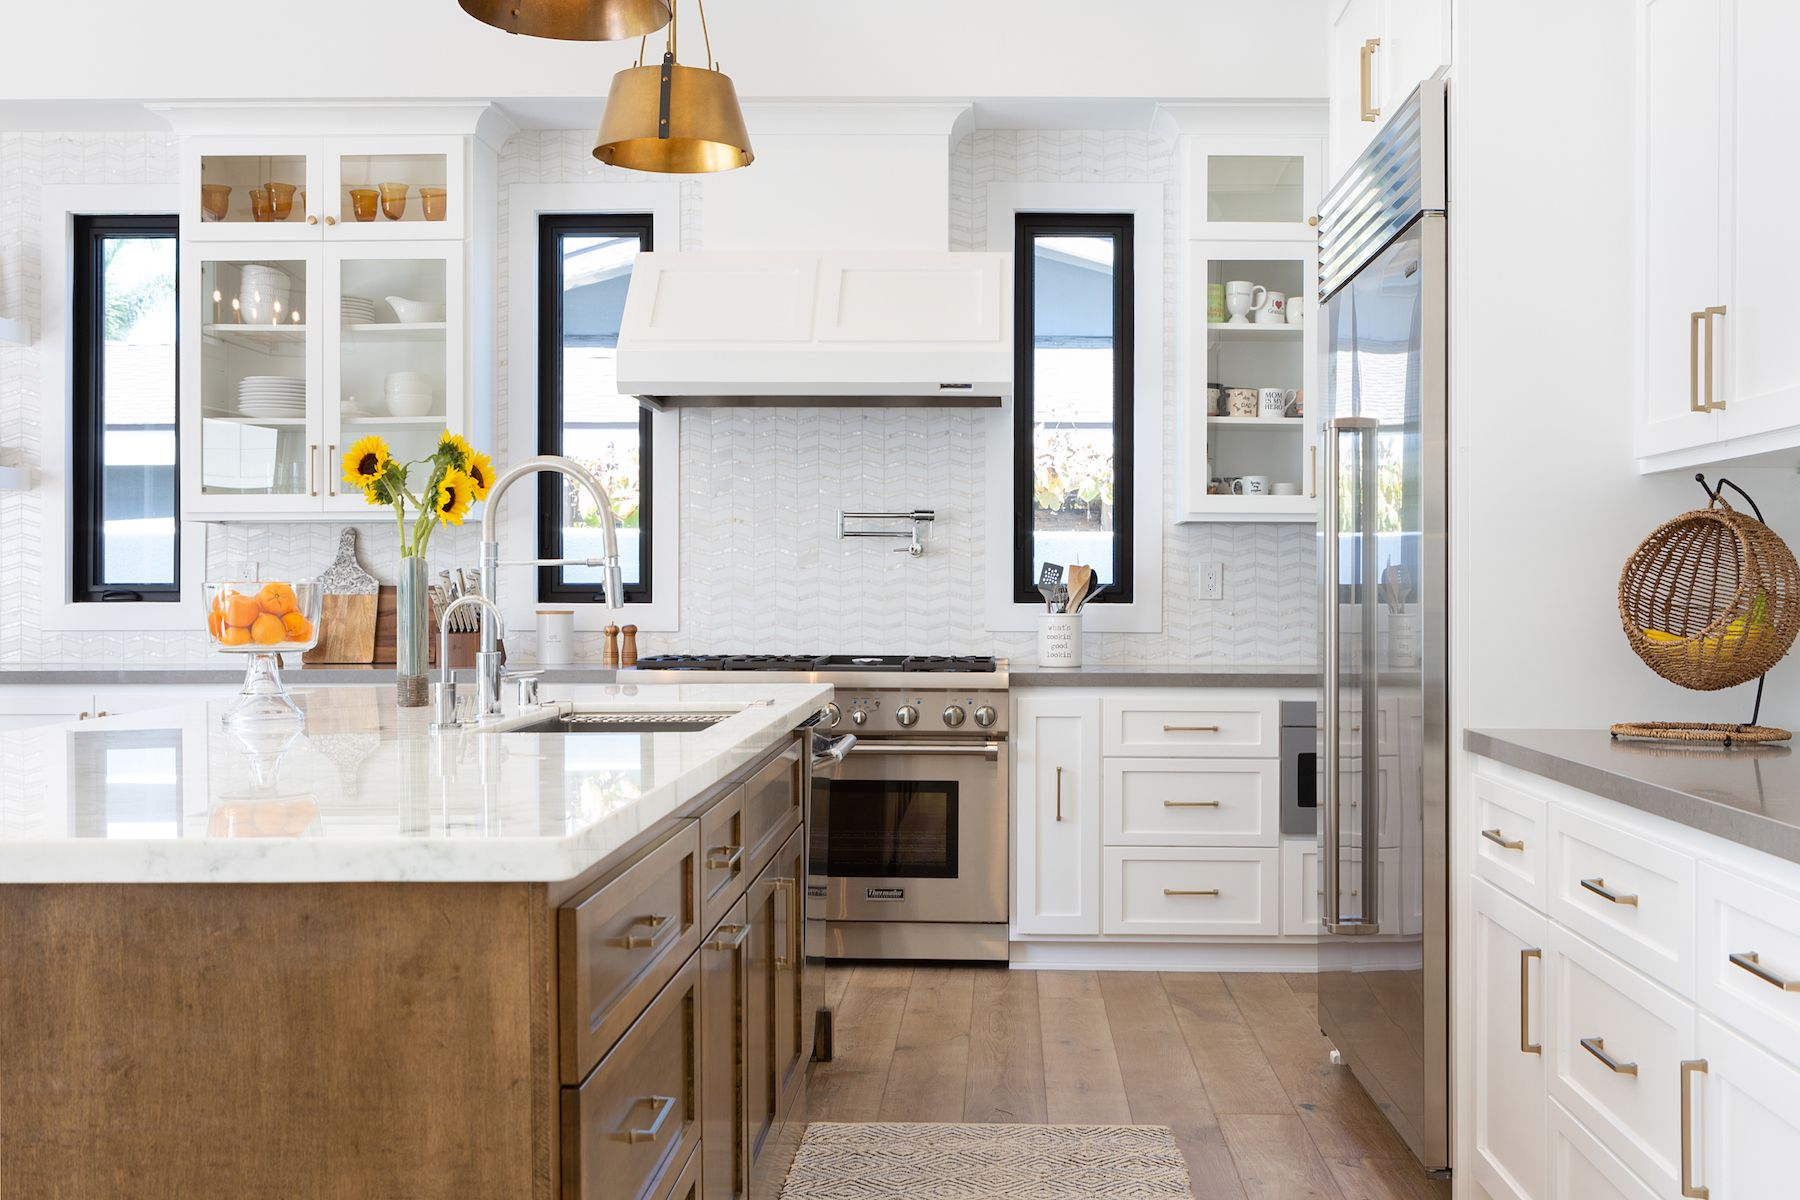 Kitchen Islands Are the Most Popular Feature in Kitchen